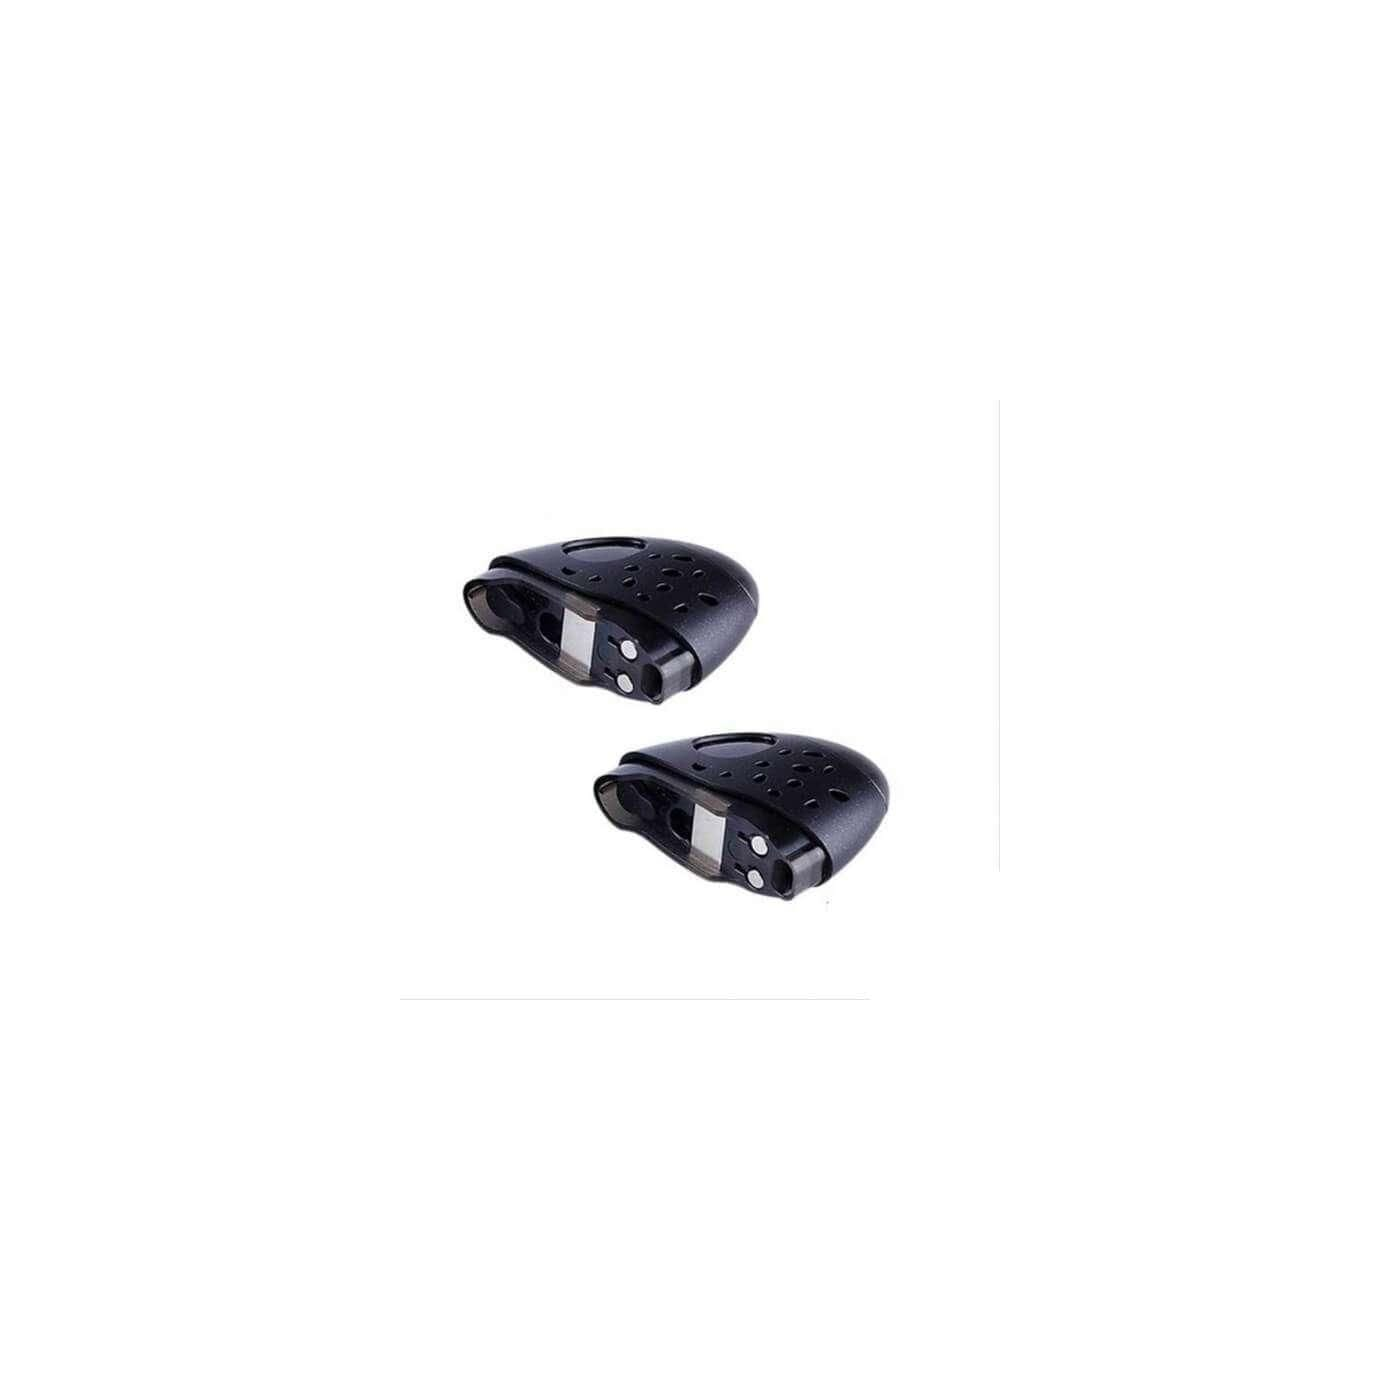 Sigelei Origin Replacement Pods - 2 Pack